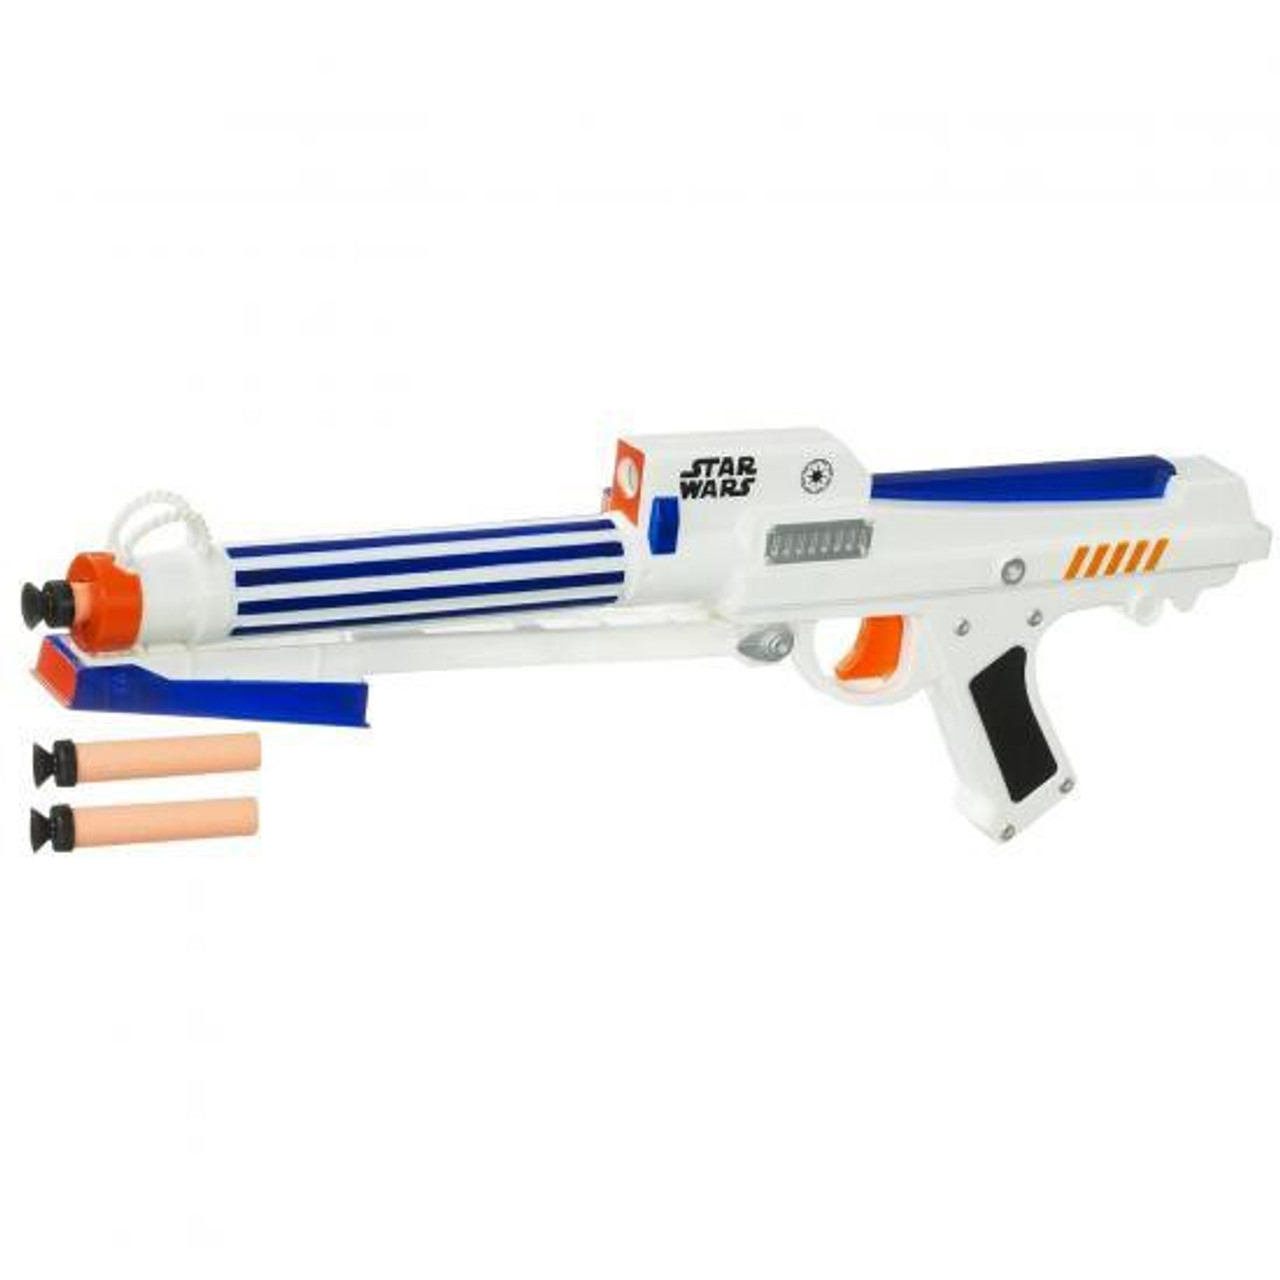 Star Wars The Clone Wars Blasters Clone Trooper Blaster Roleplay Toy [White]